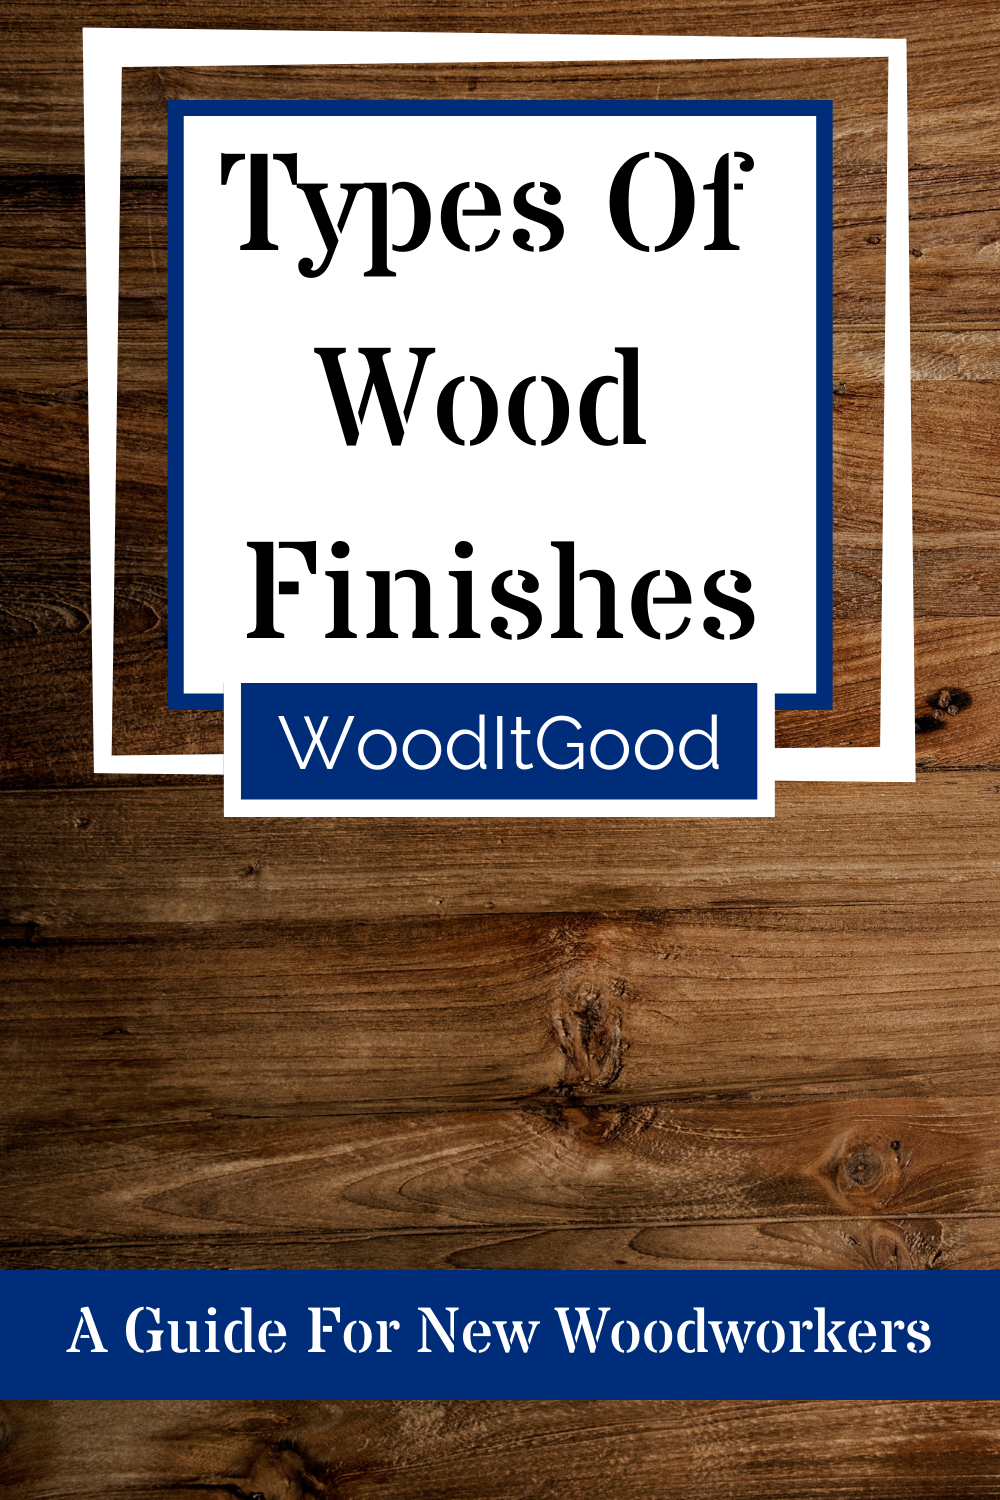 Types of Wood Finishes, Newbie Edition